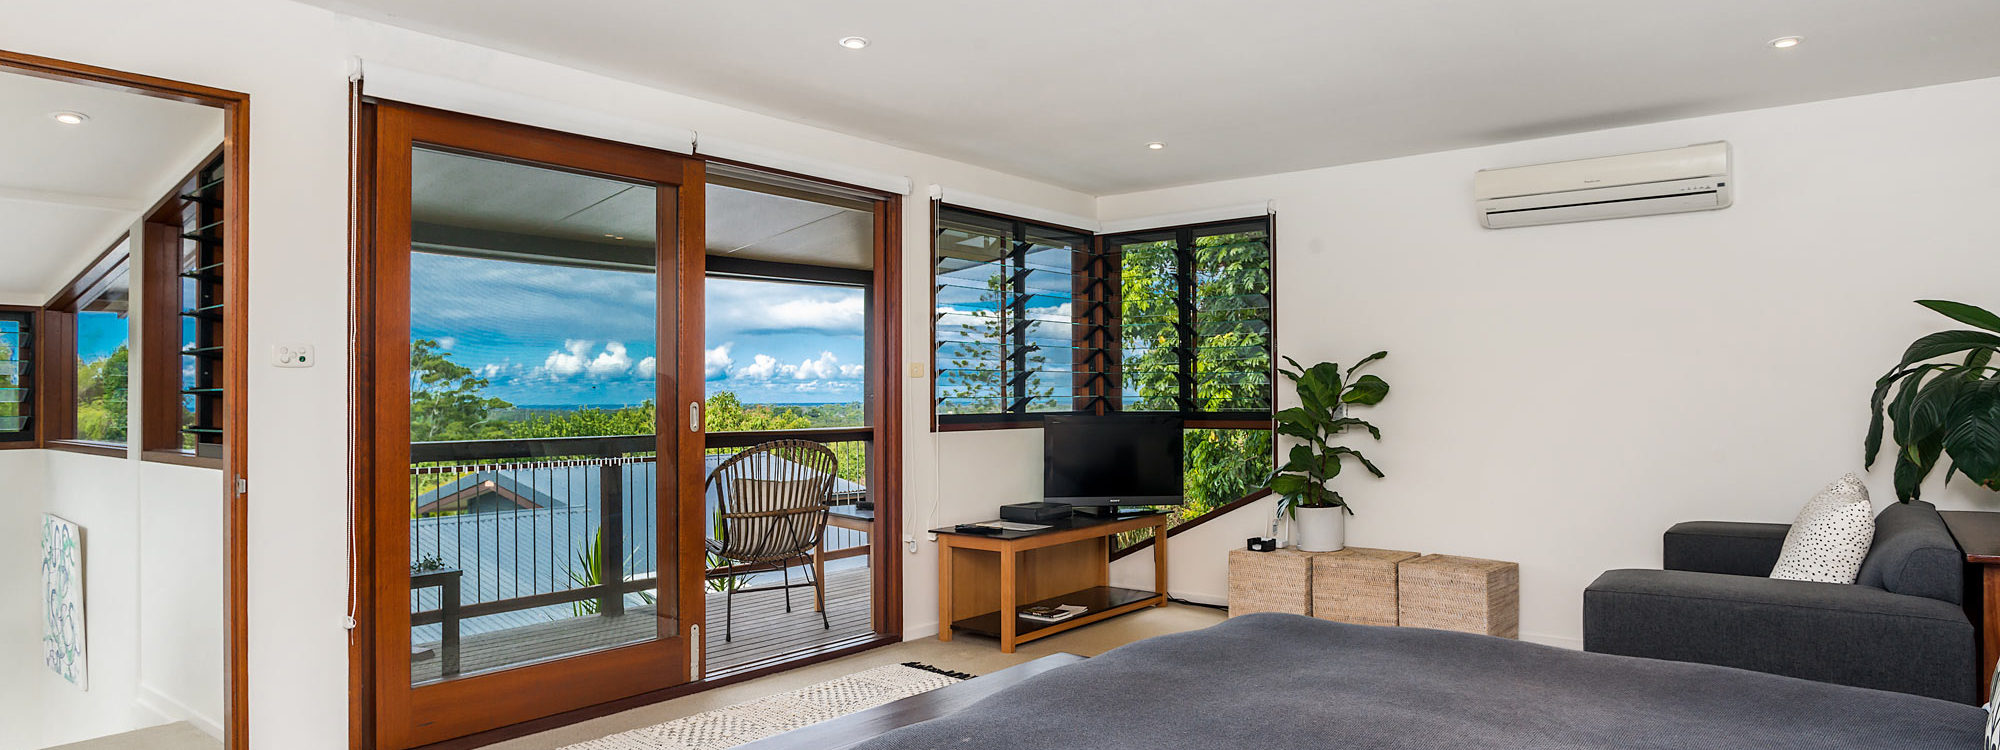 Stone and Grove - Byron Bay - Ewingsdale - Upstairs bedroom with balcony view